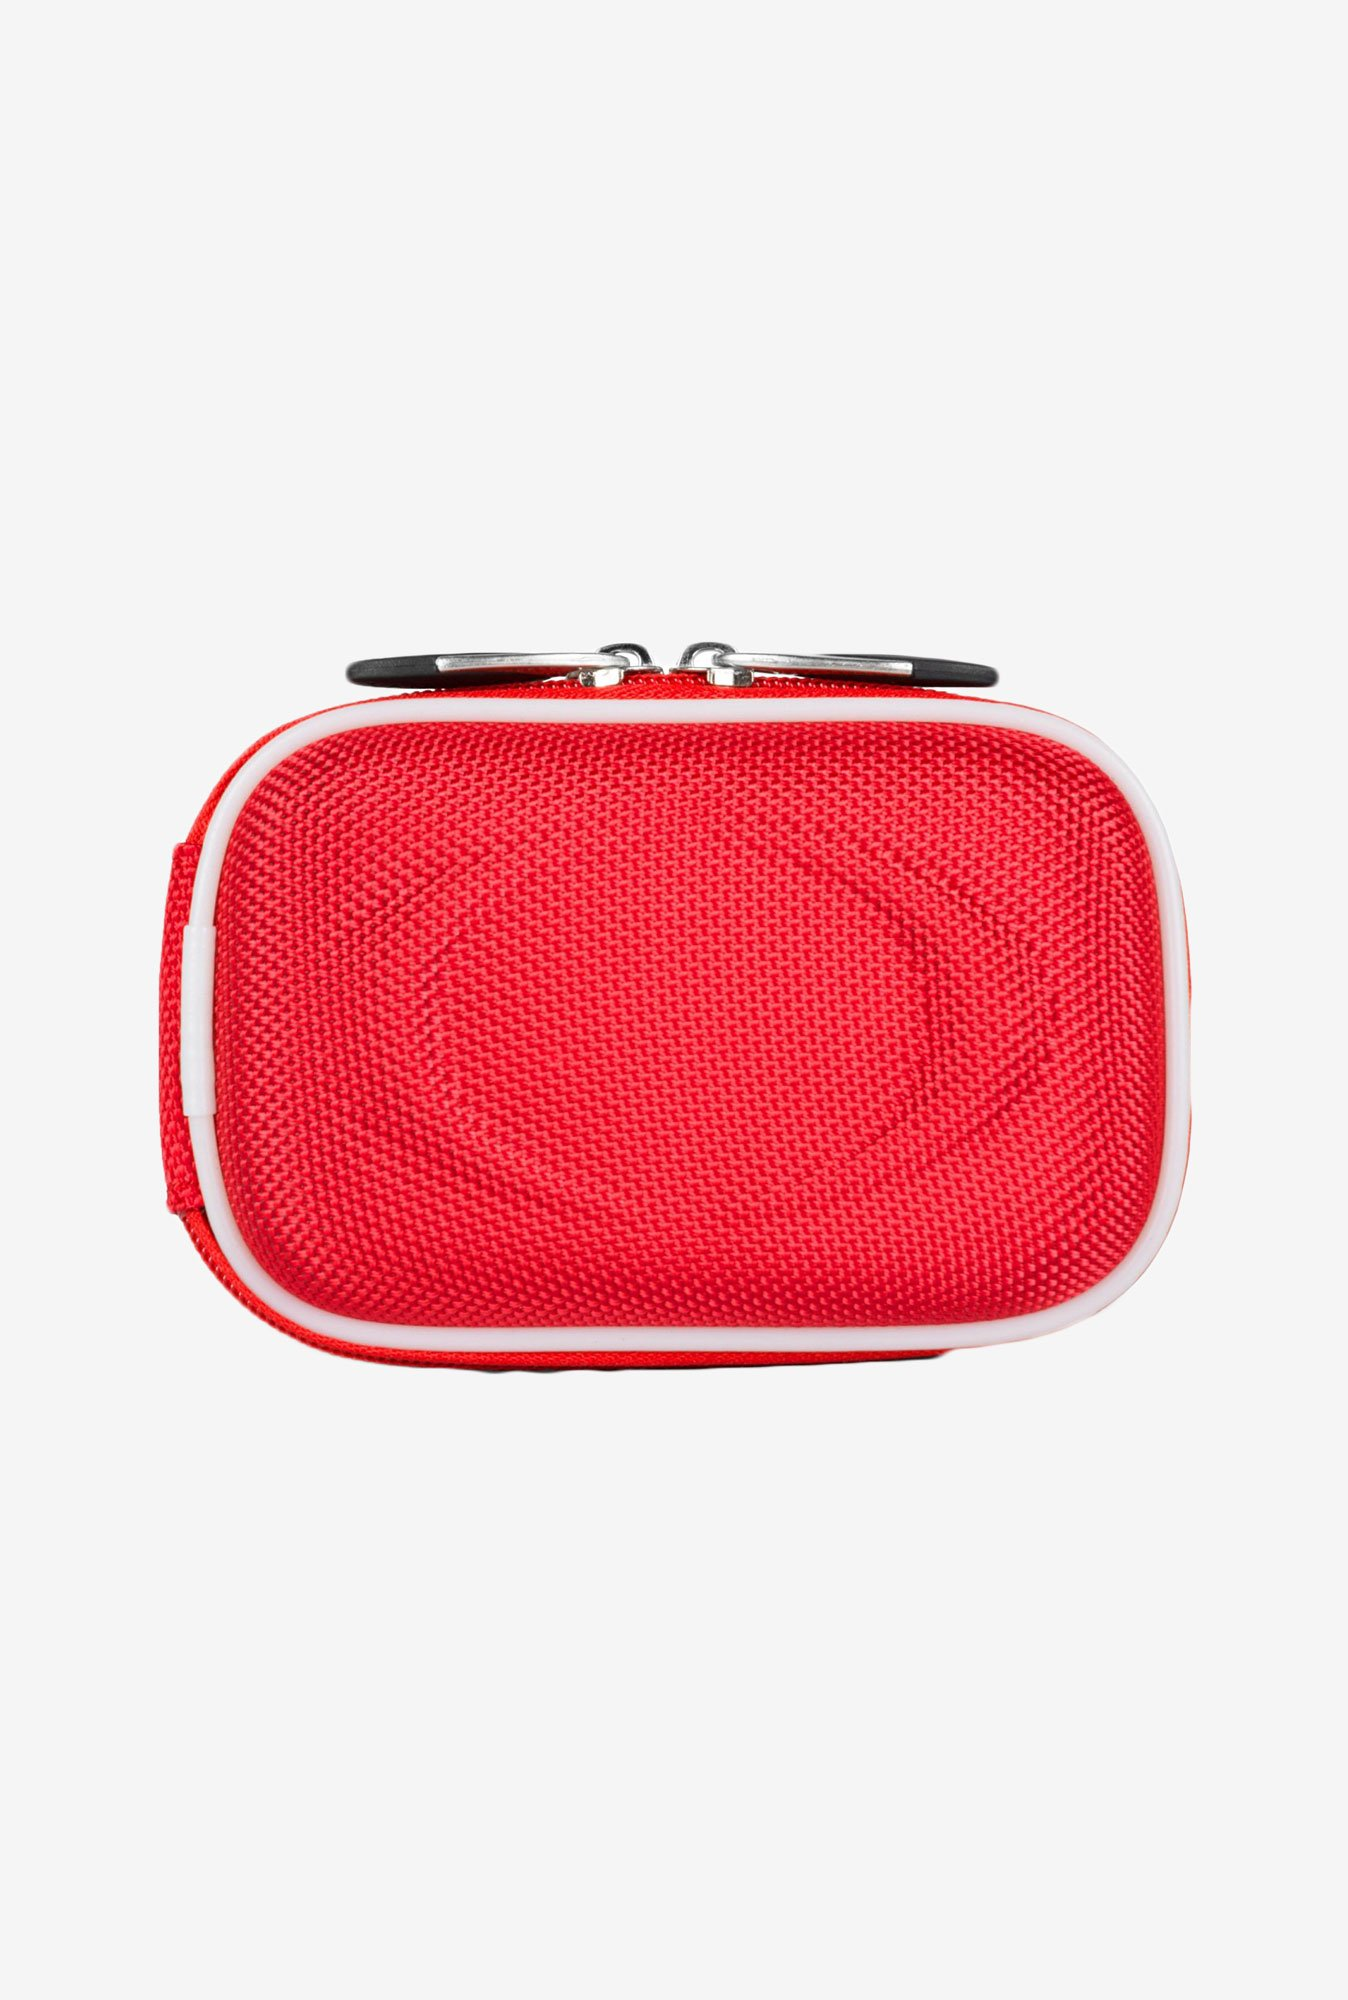 Vangoddy Nylon Slim Eva Camera Carrying Case (Red)